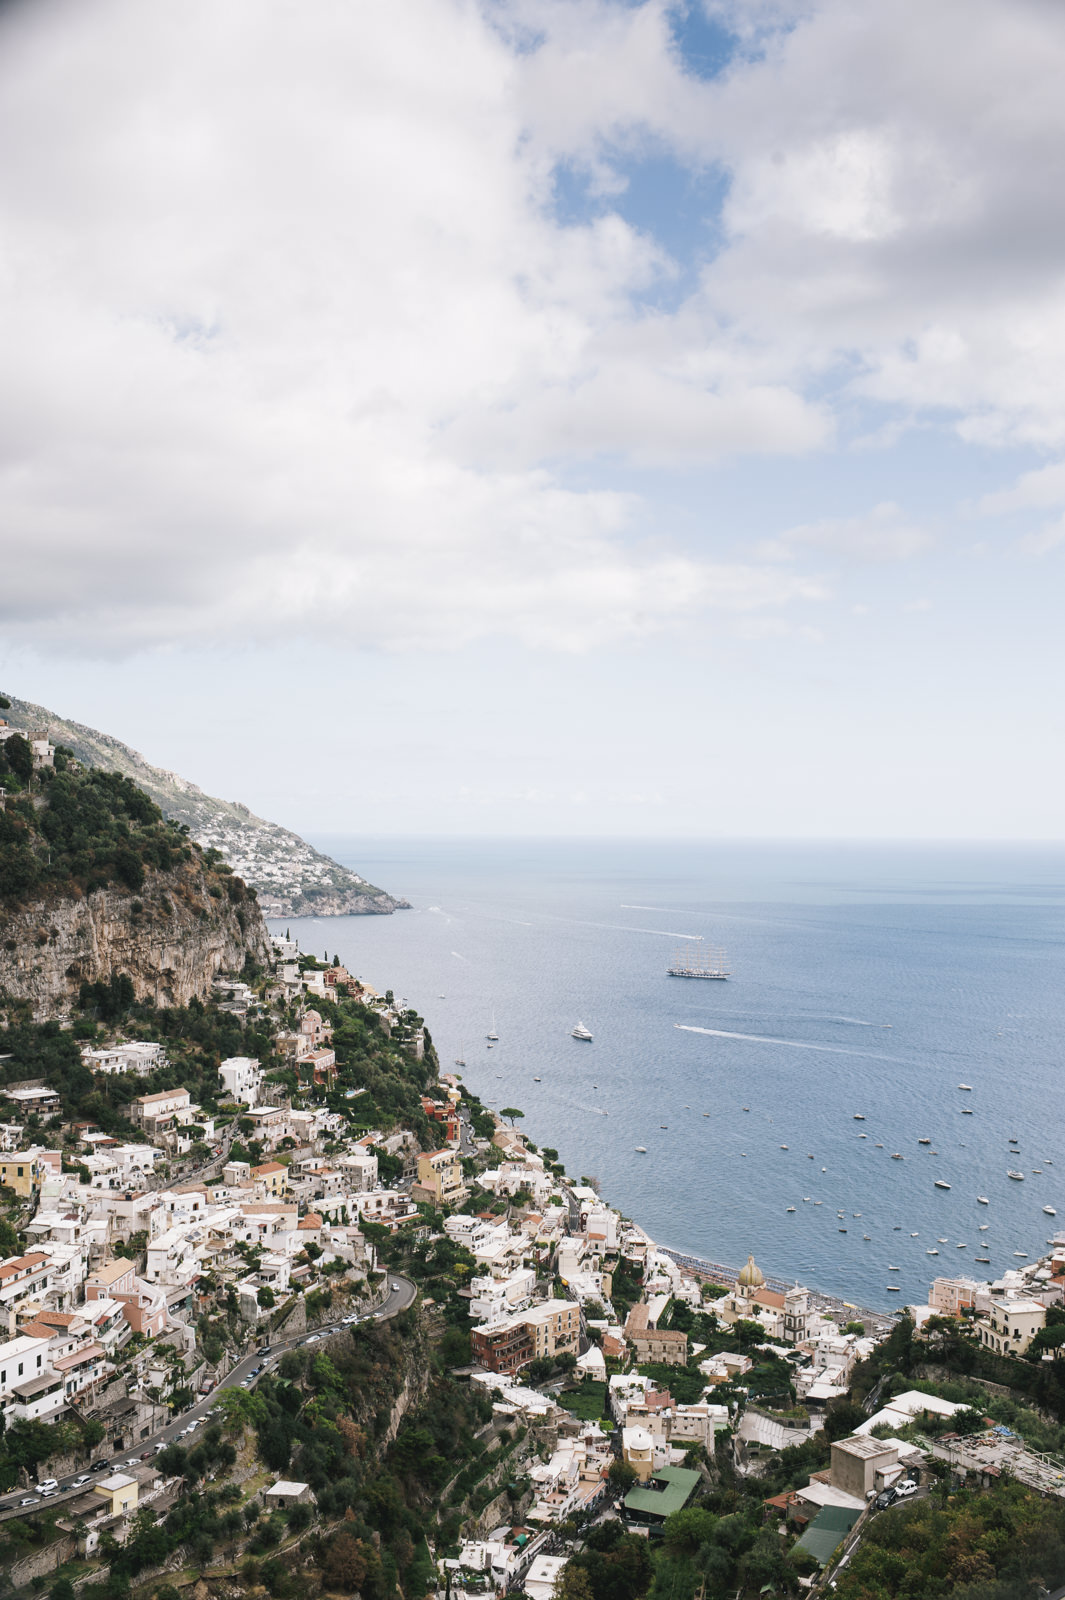 landscape from the amalfi coast